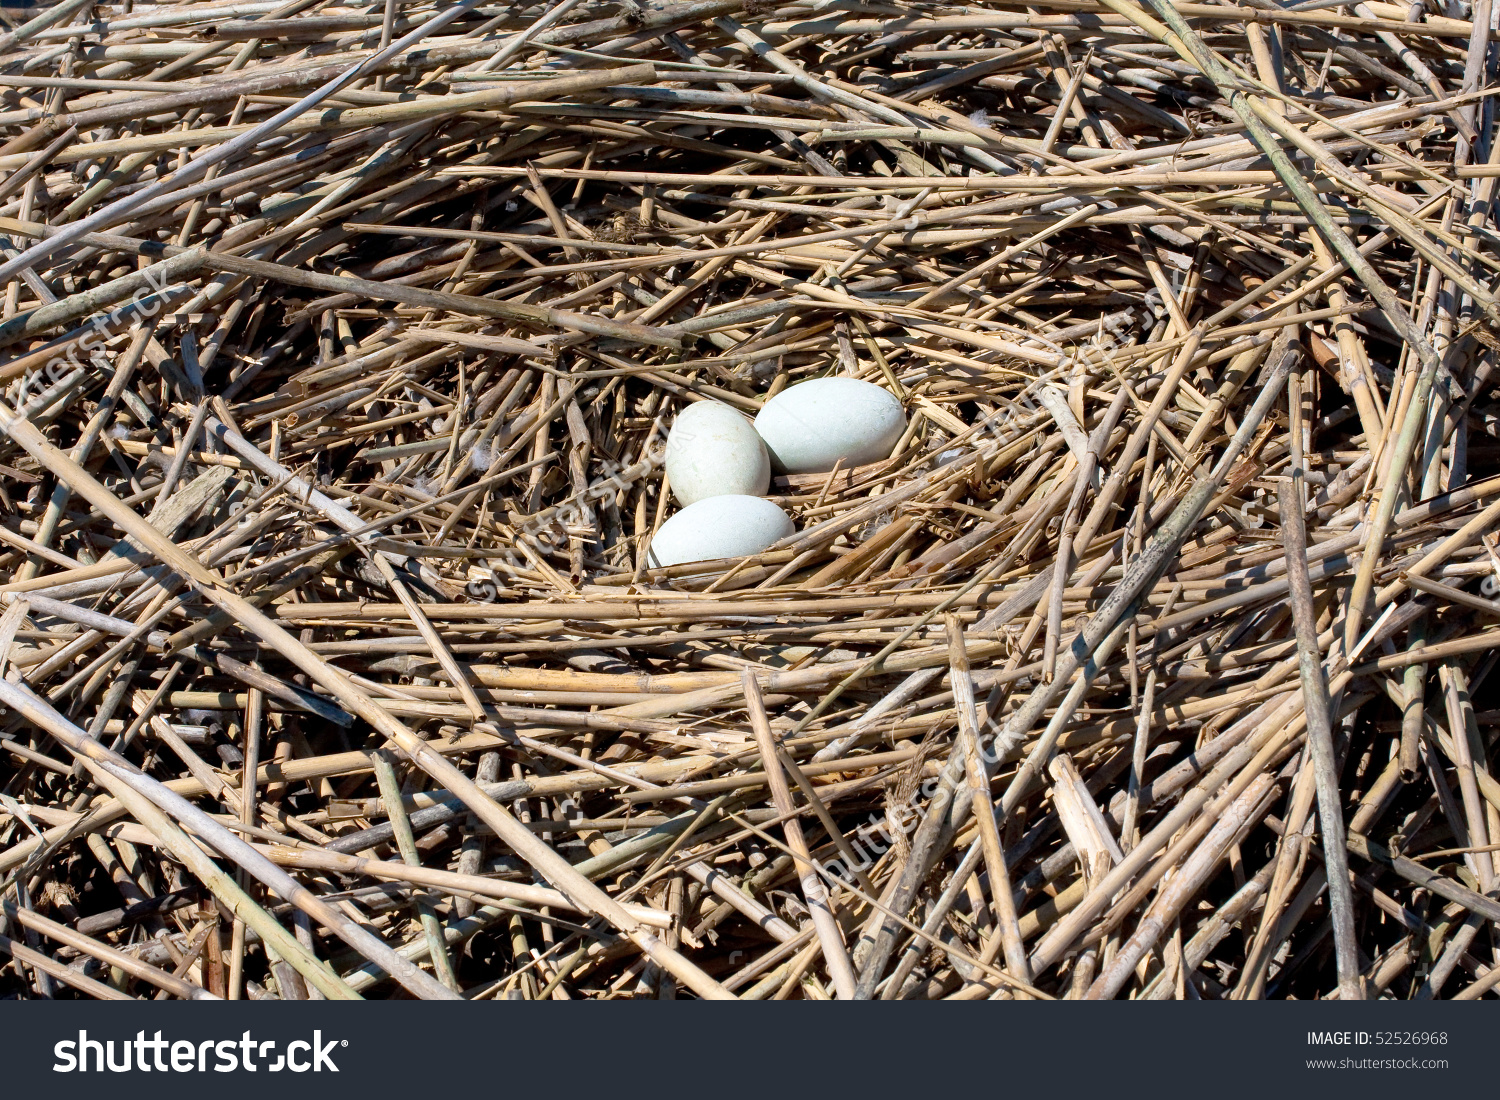 Mute Swan Nest Eggs Stock Photo 52526968.